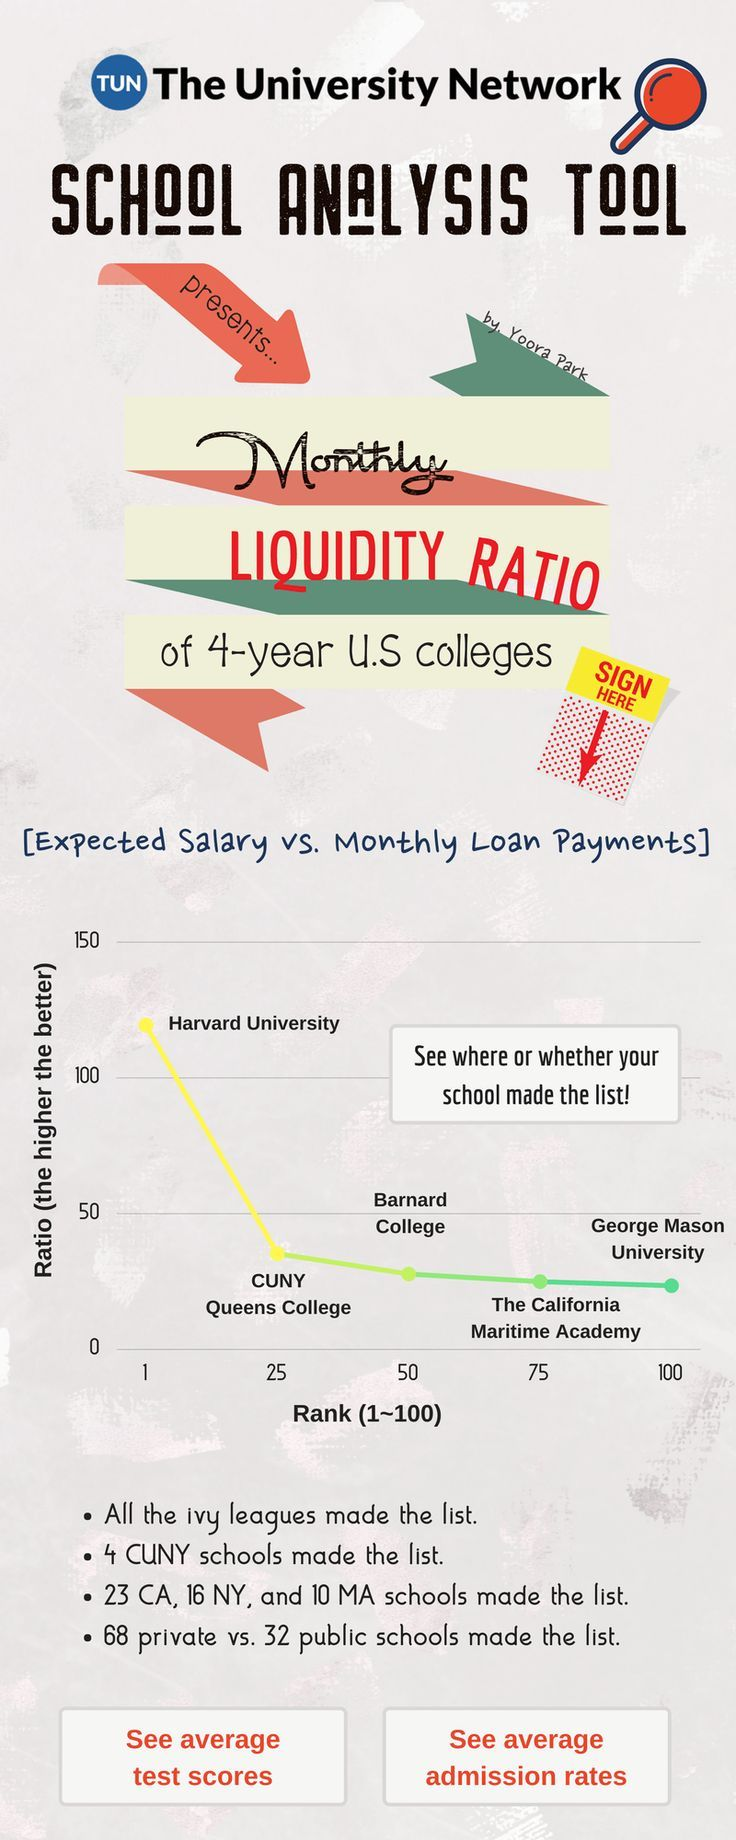 The Monthly Liquidity Ratio provides a way for students and their families to compare schools based on the salary and monthly loan payments students can expect.